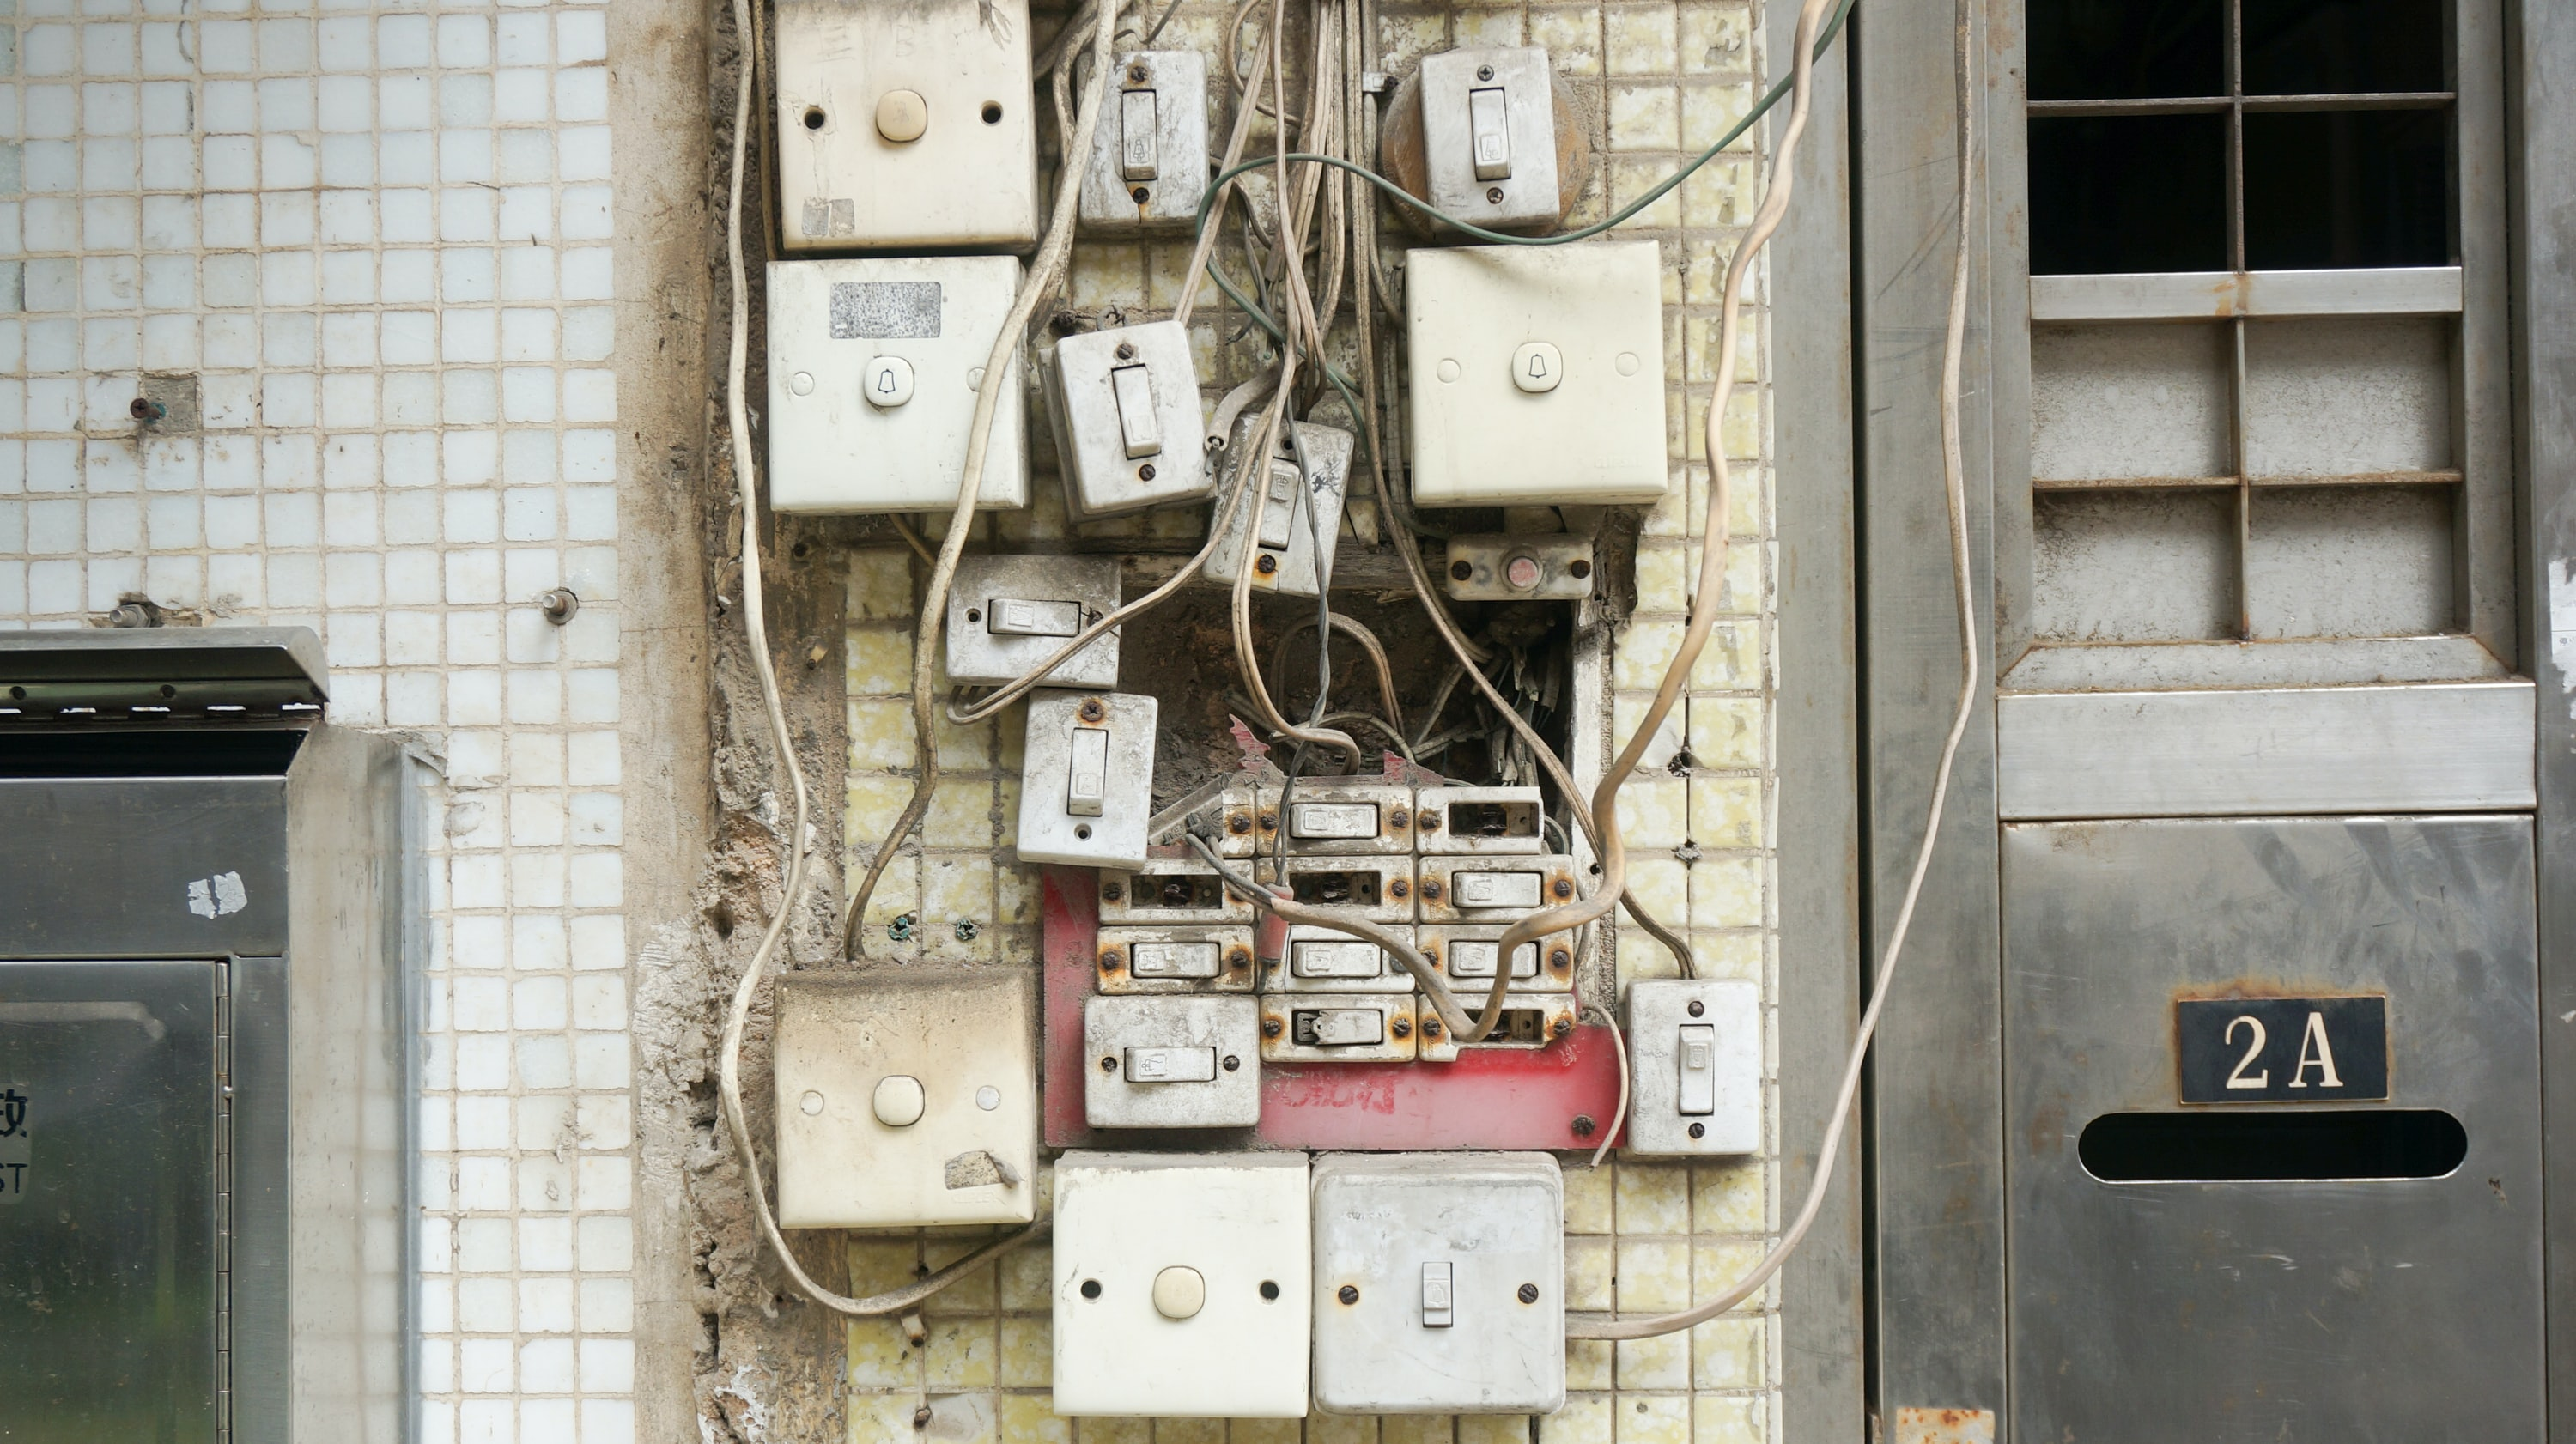 Multiple apartment buzzer switches with exposed wires on a wall.